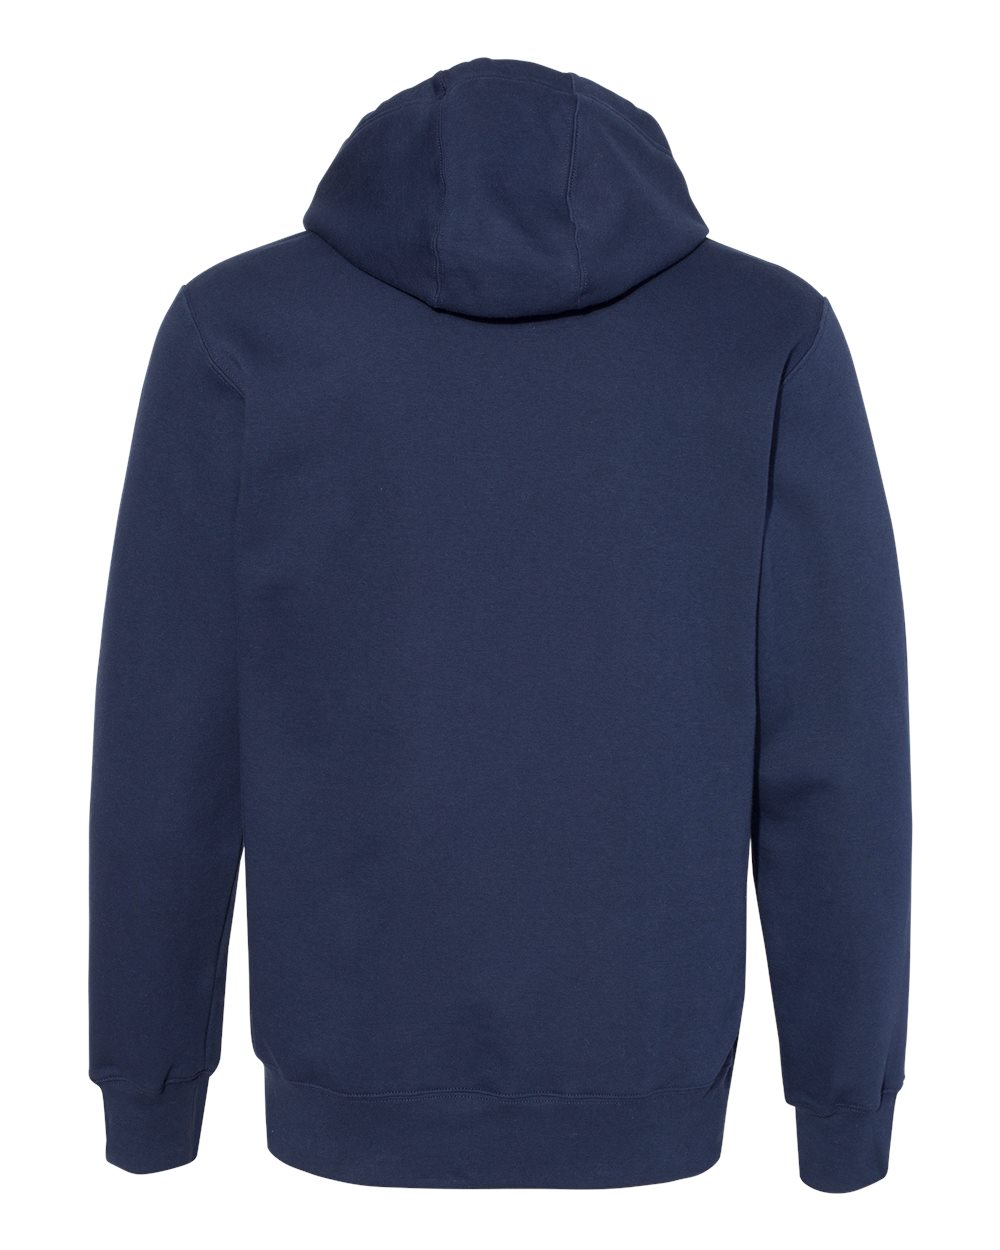 Russell-Athletic-Mens-Cotton-Rich-Fleece-Hooded-Sweatshirt-82ONSM-up-to-3XL miniature 19